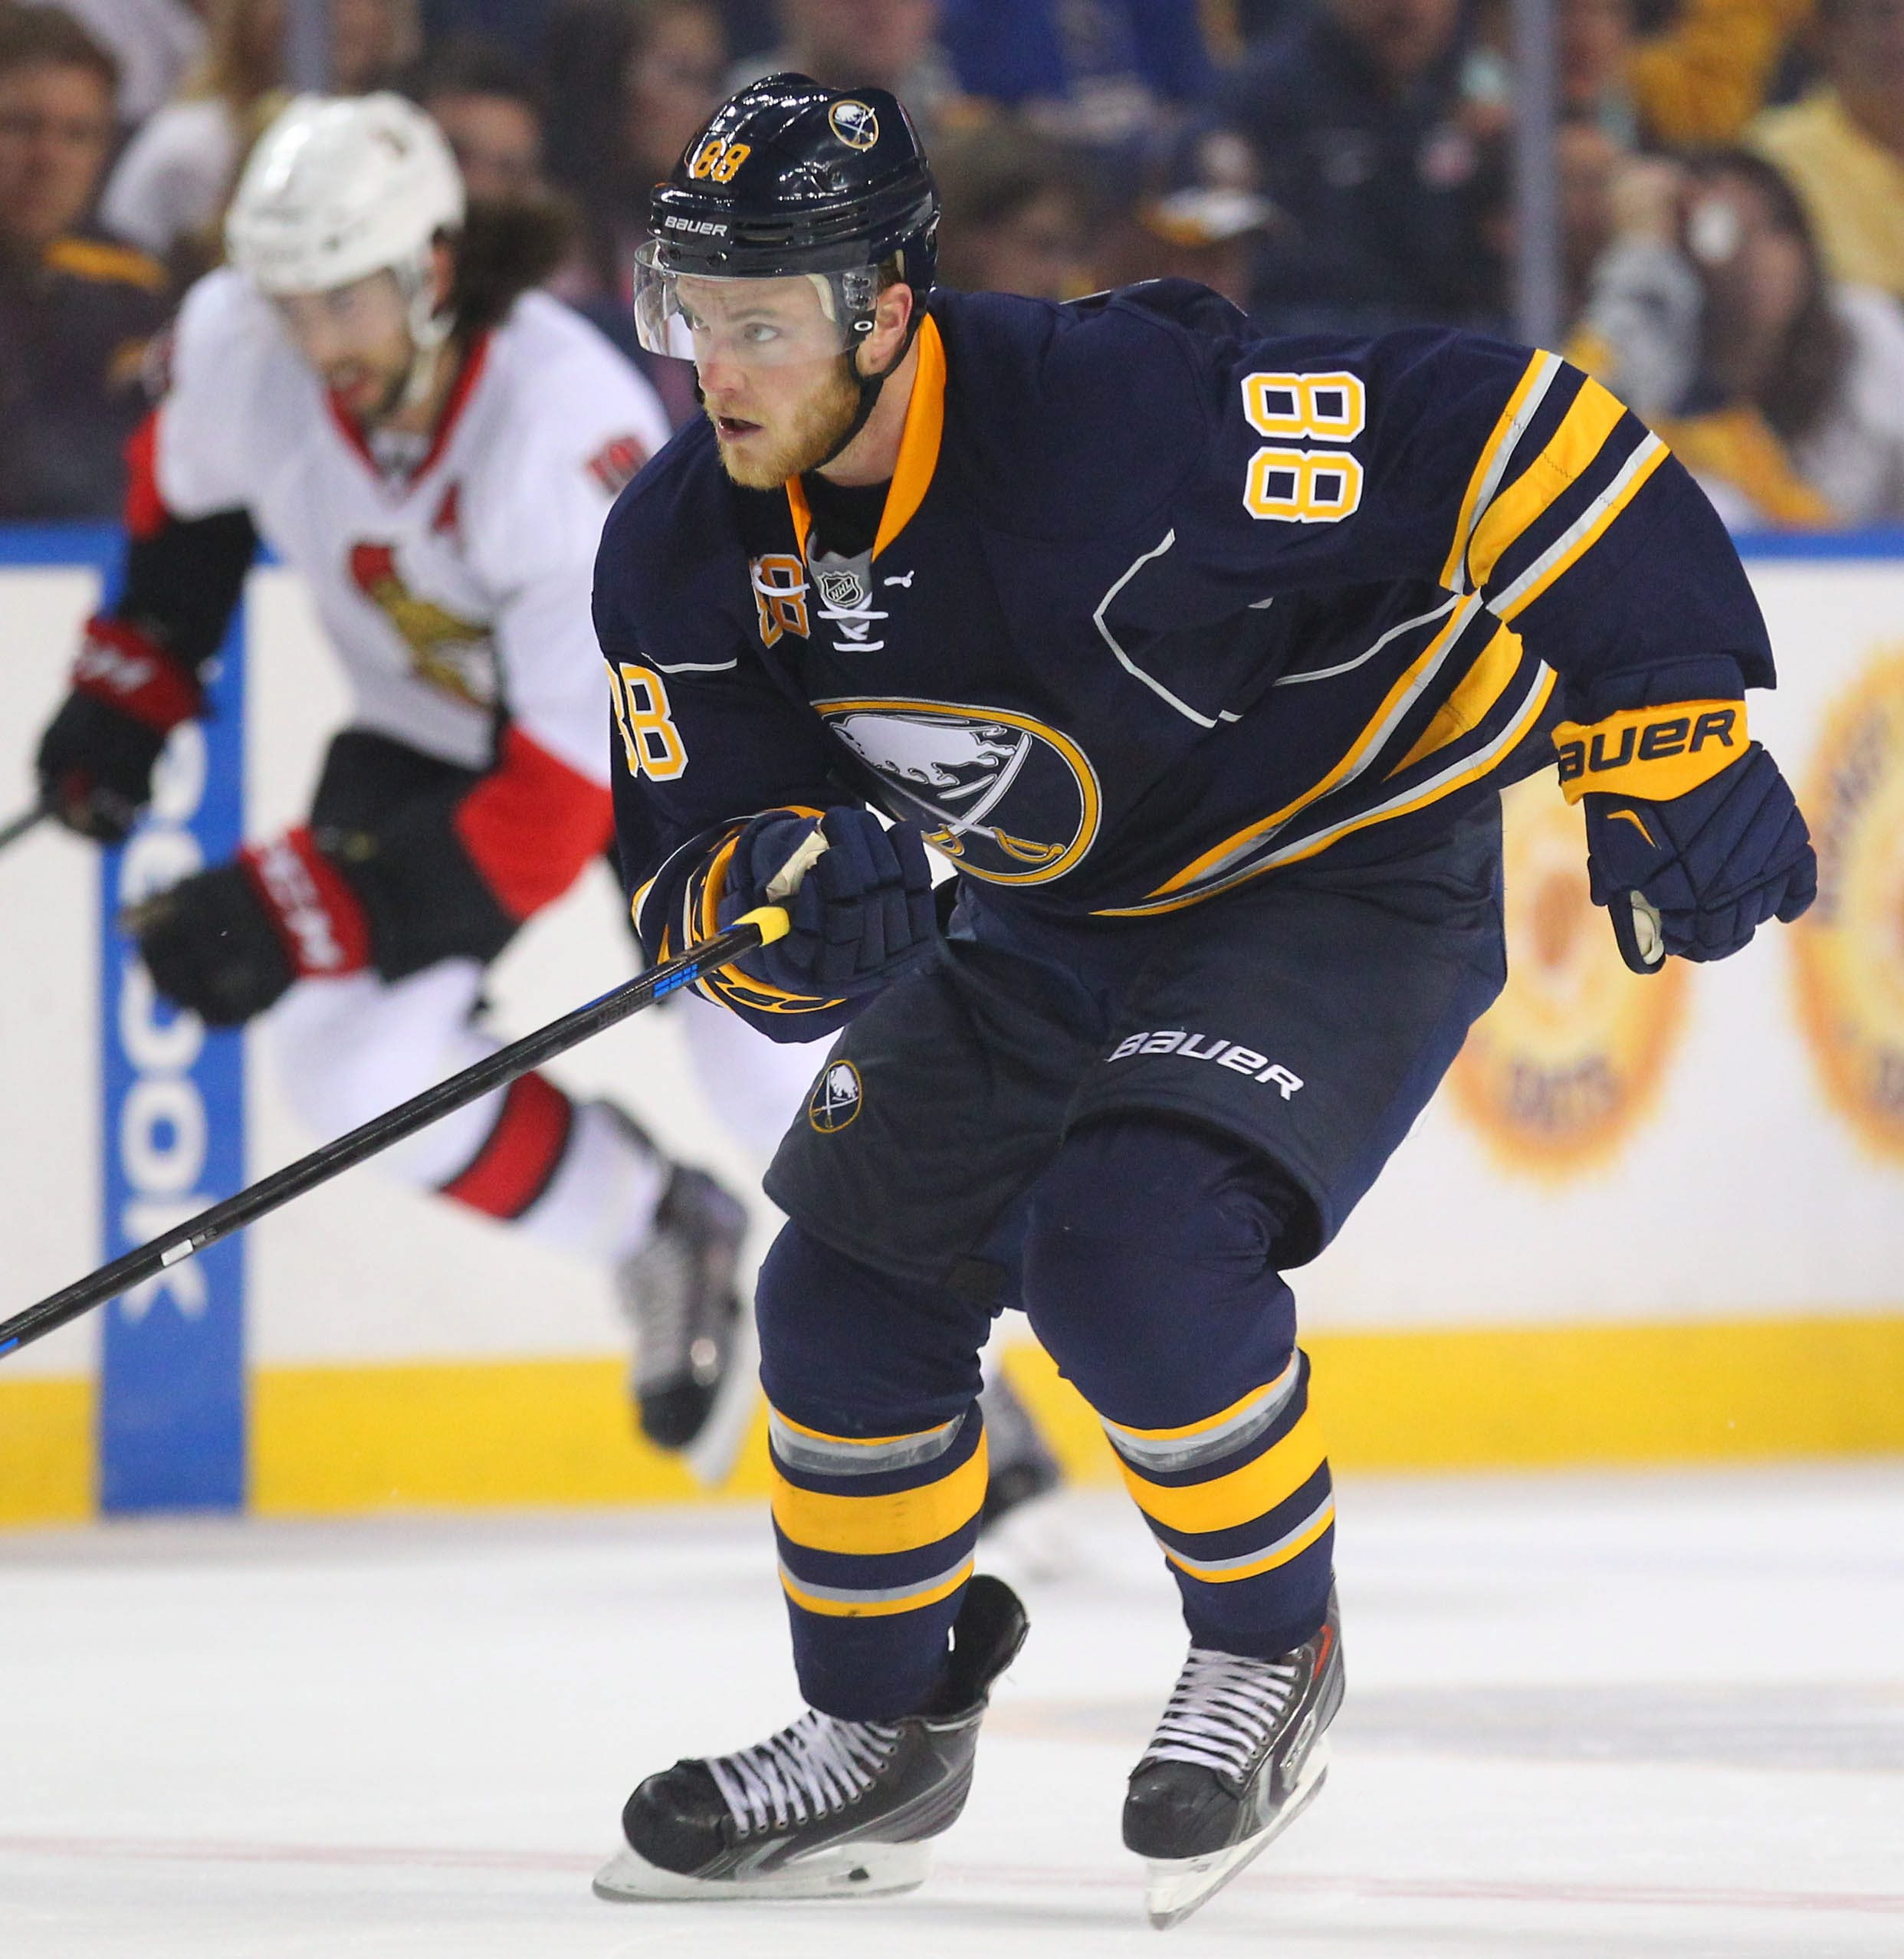 Due to back trouble, Jamie McGinn had not played in a hockey game for 10 months when he arrived at Sabres training camp.